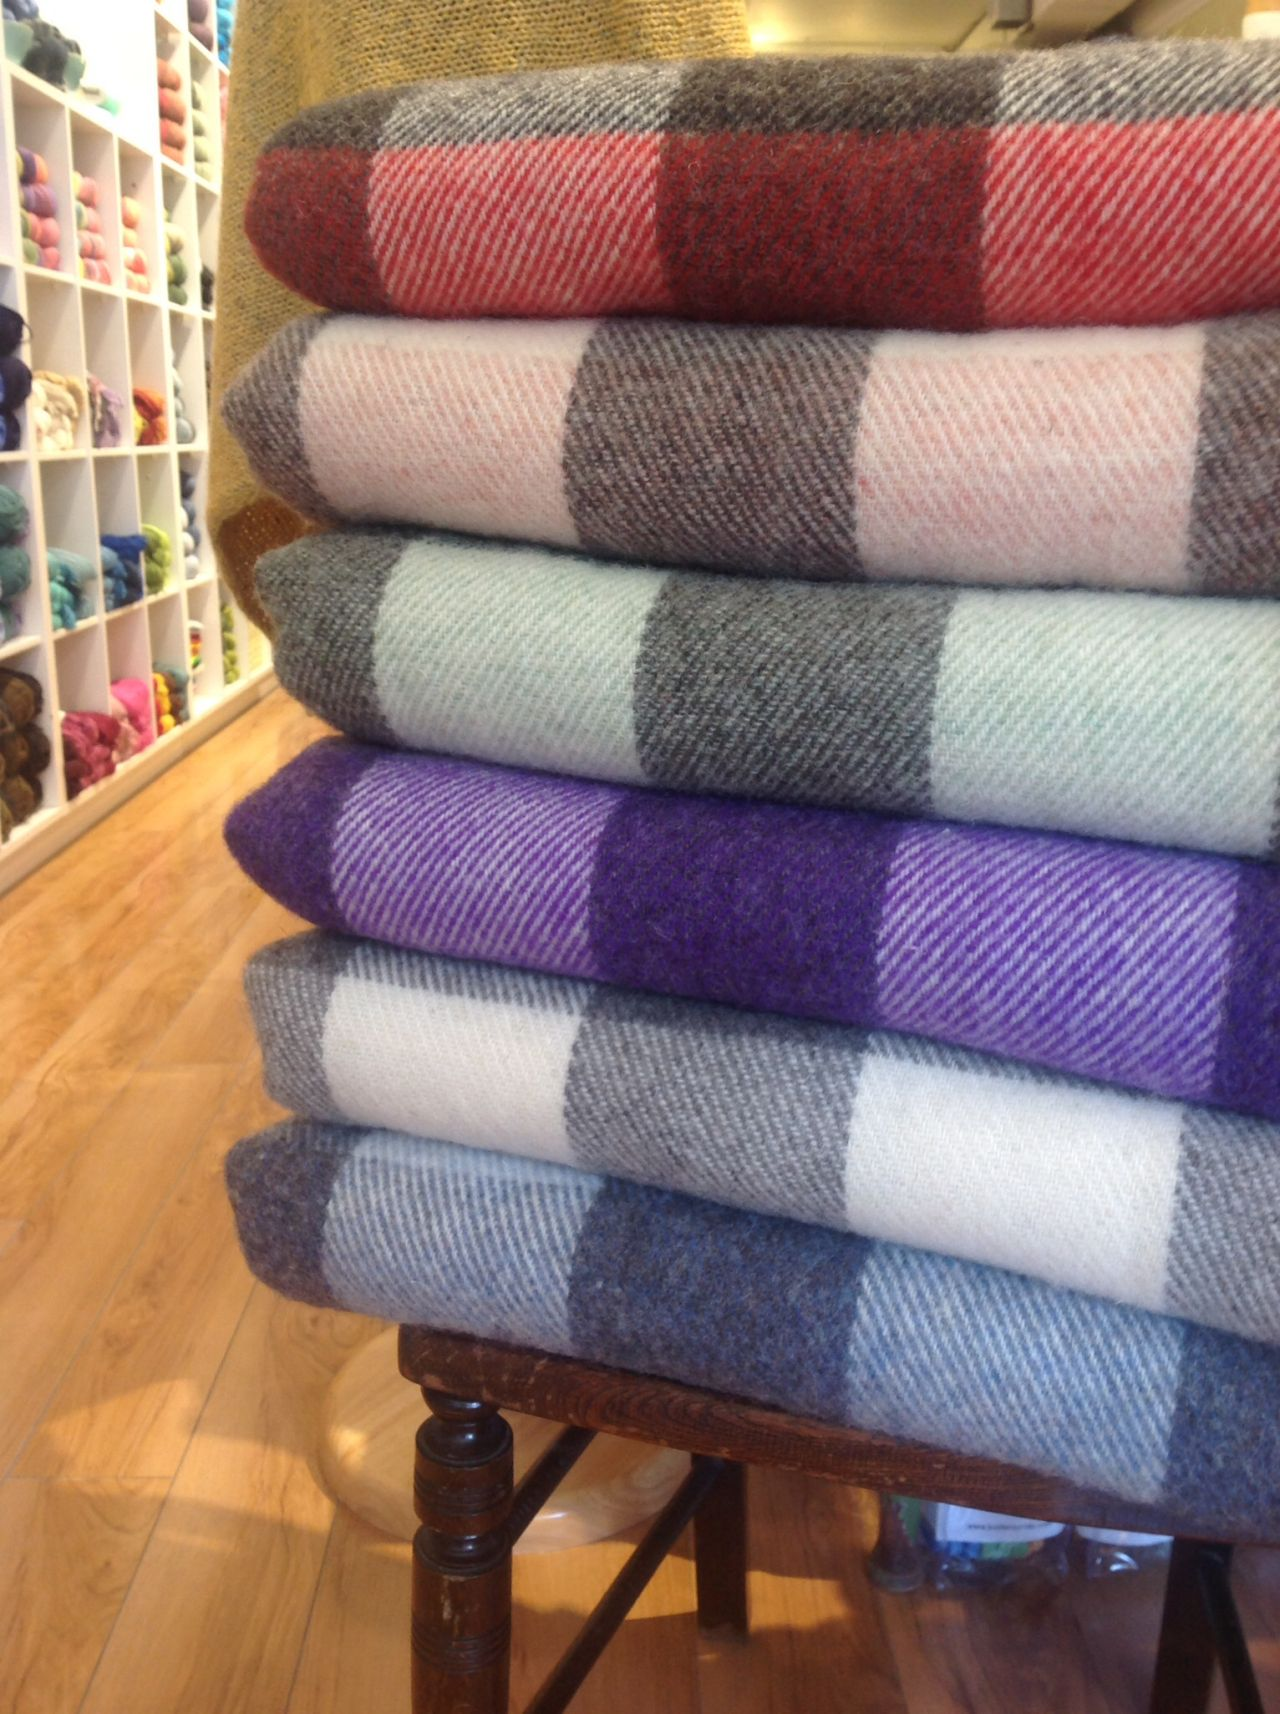 Canadian-made wool blankets